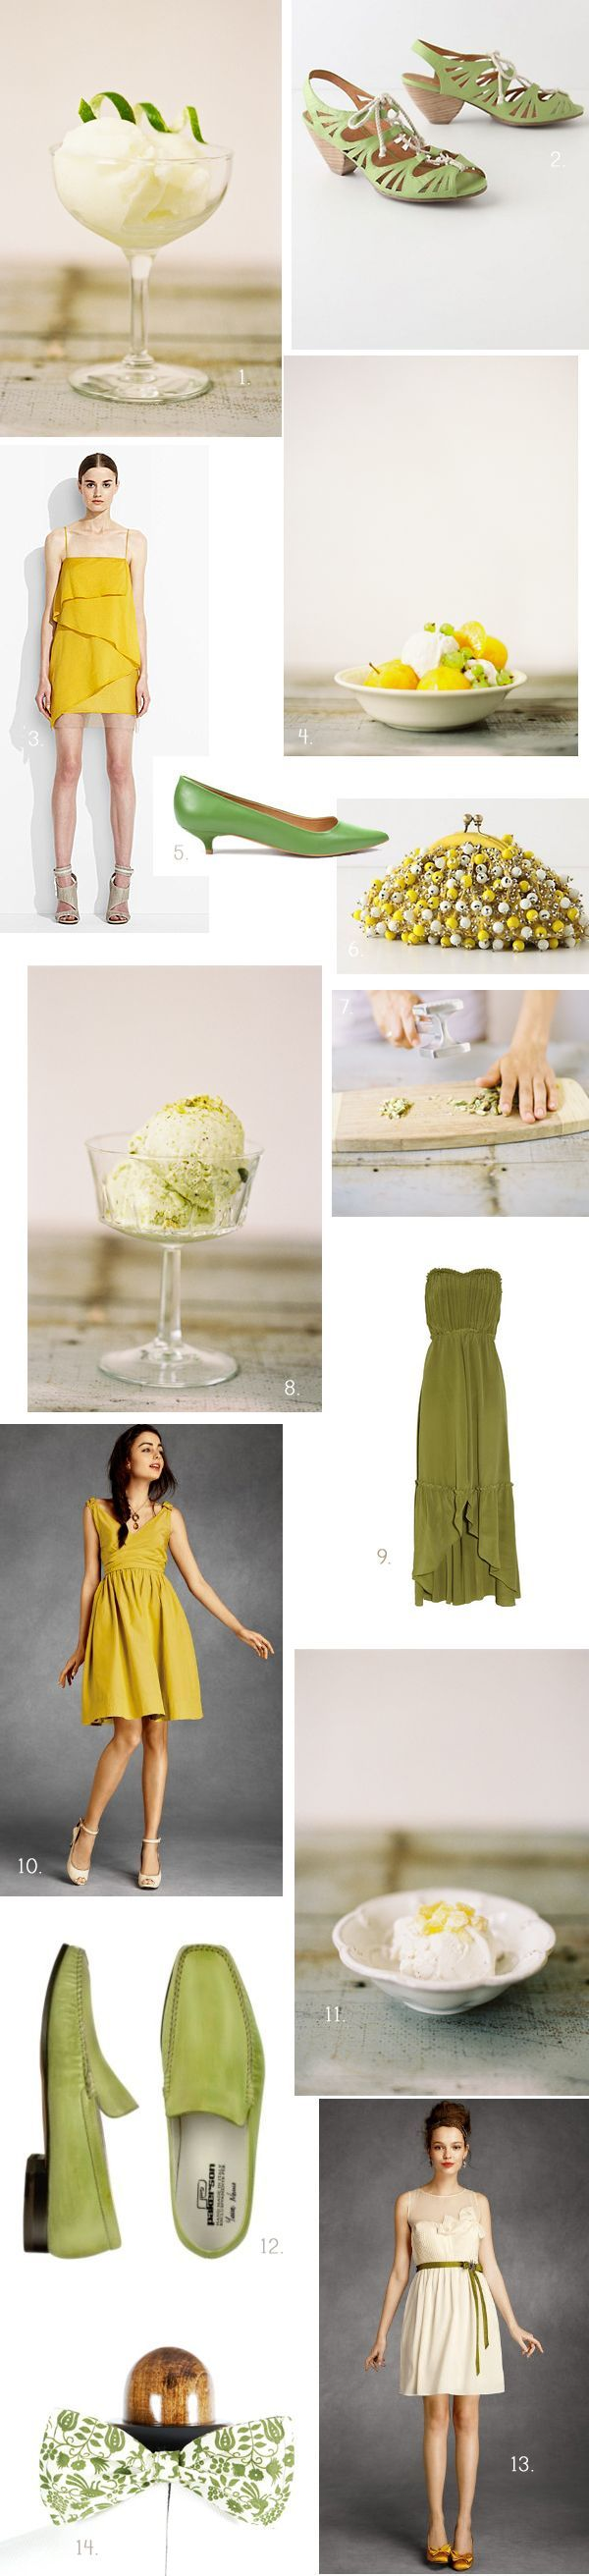 INSPIRATION: Pistachio Ice Cream Party